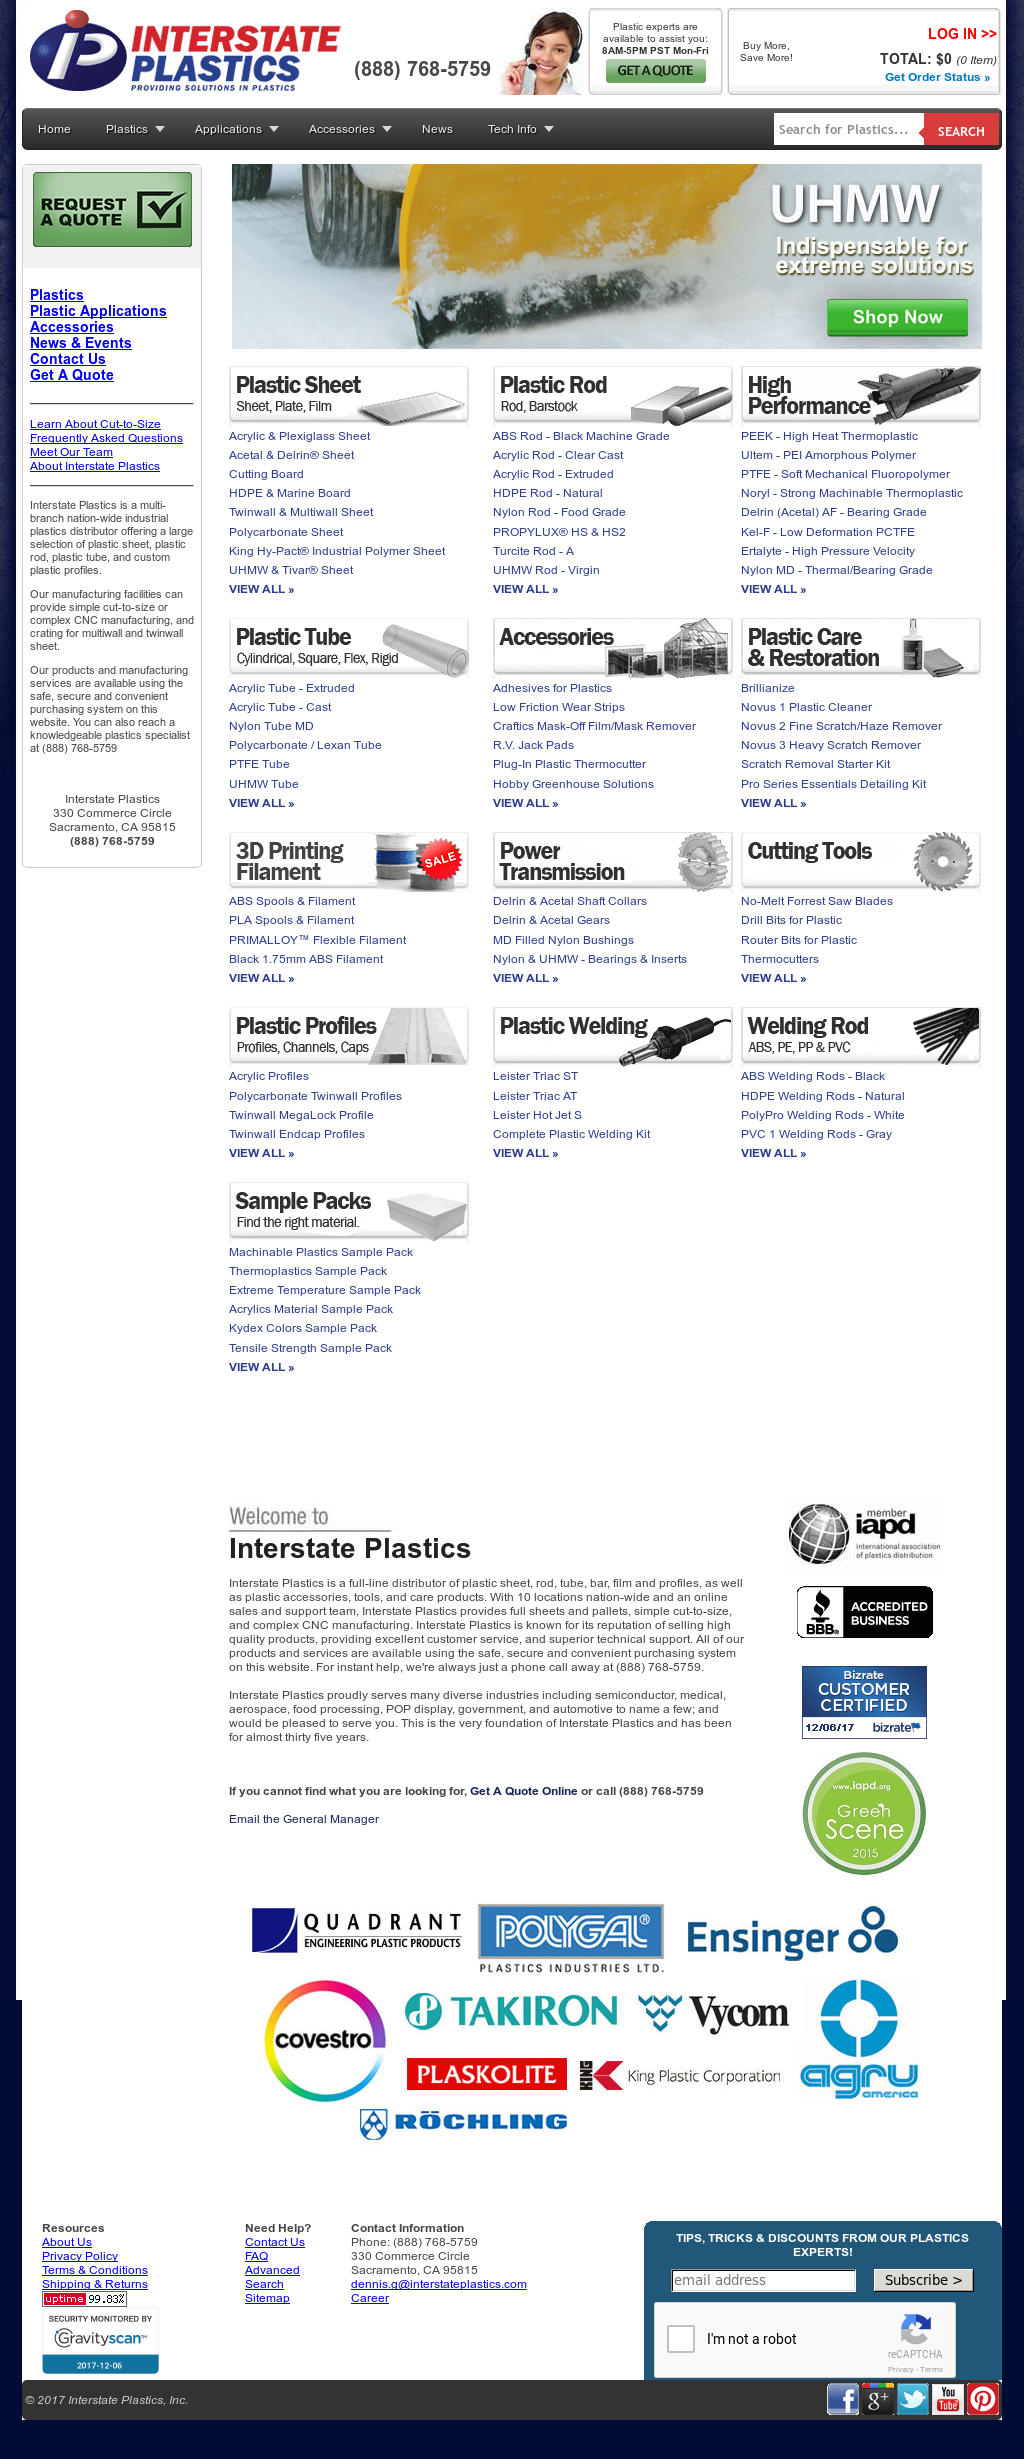 Interstate Plastics Competitors, Revenue and Employees